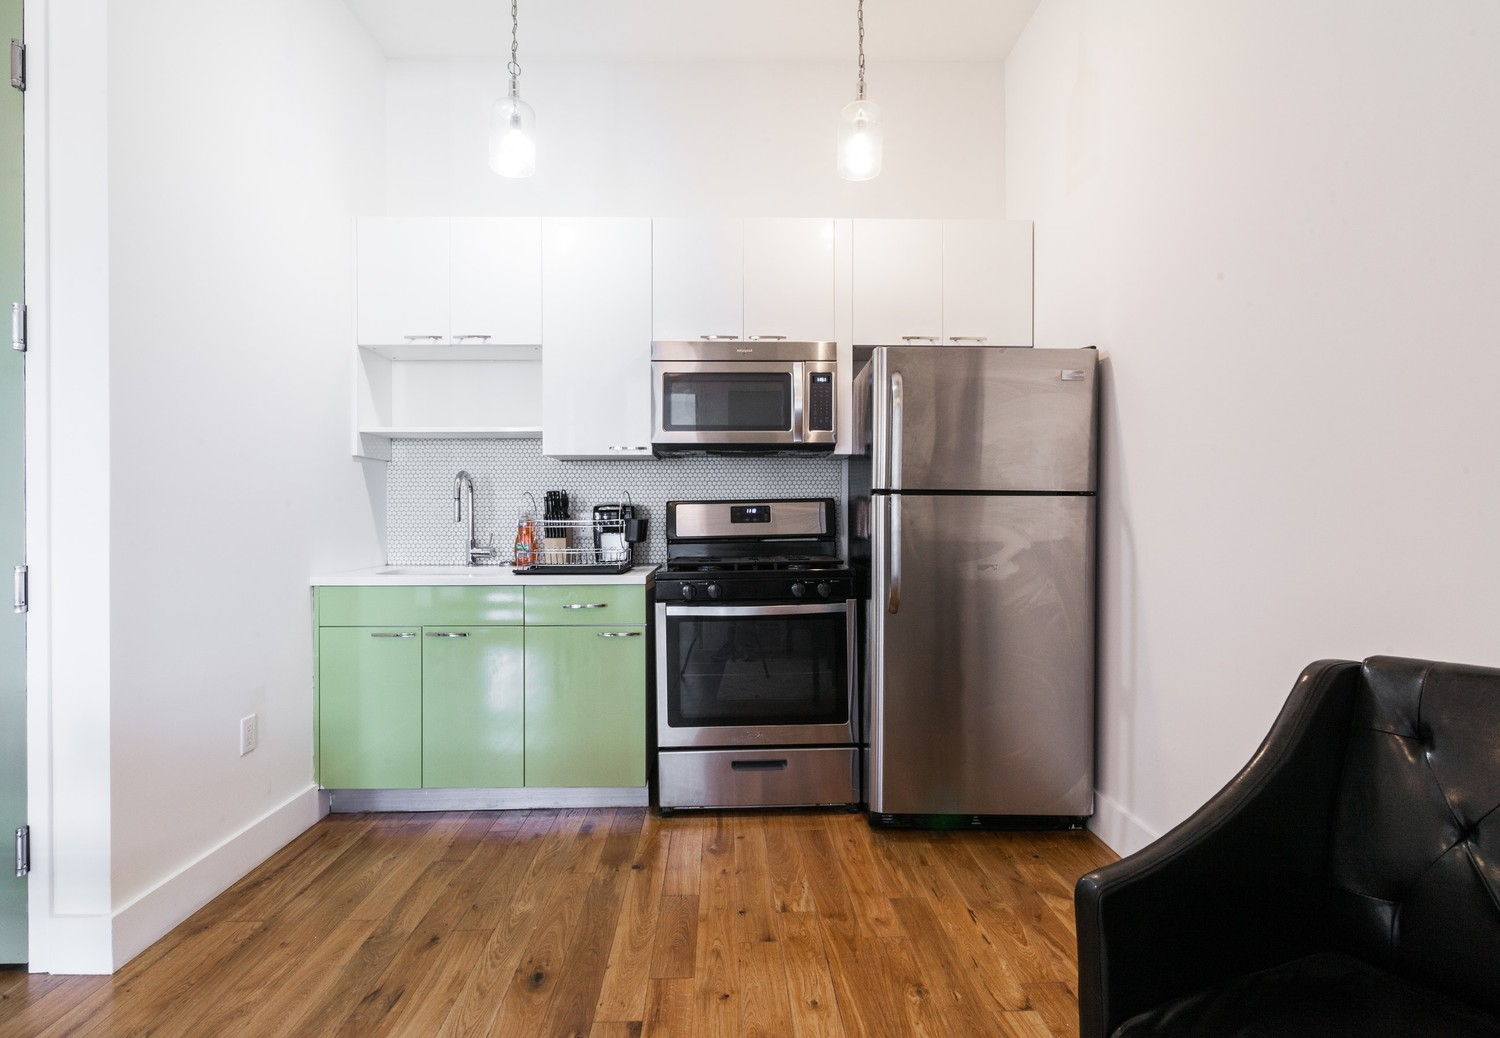 Private Room in 4 Bed / 1.5 Bath Shared Apt. Furnished + Utilities & WiFi